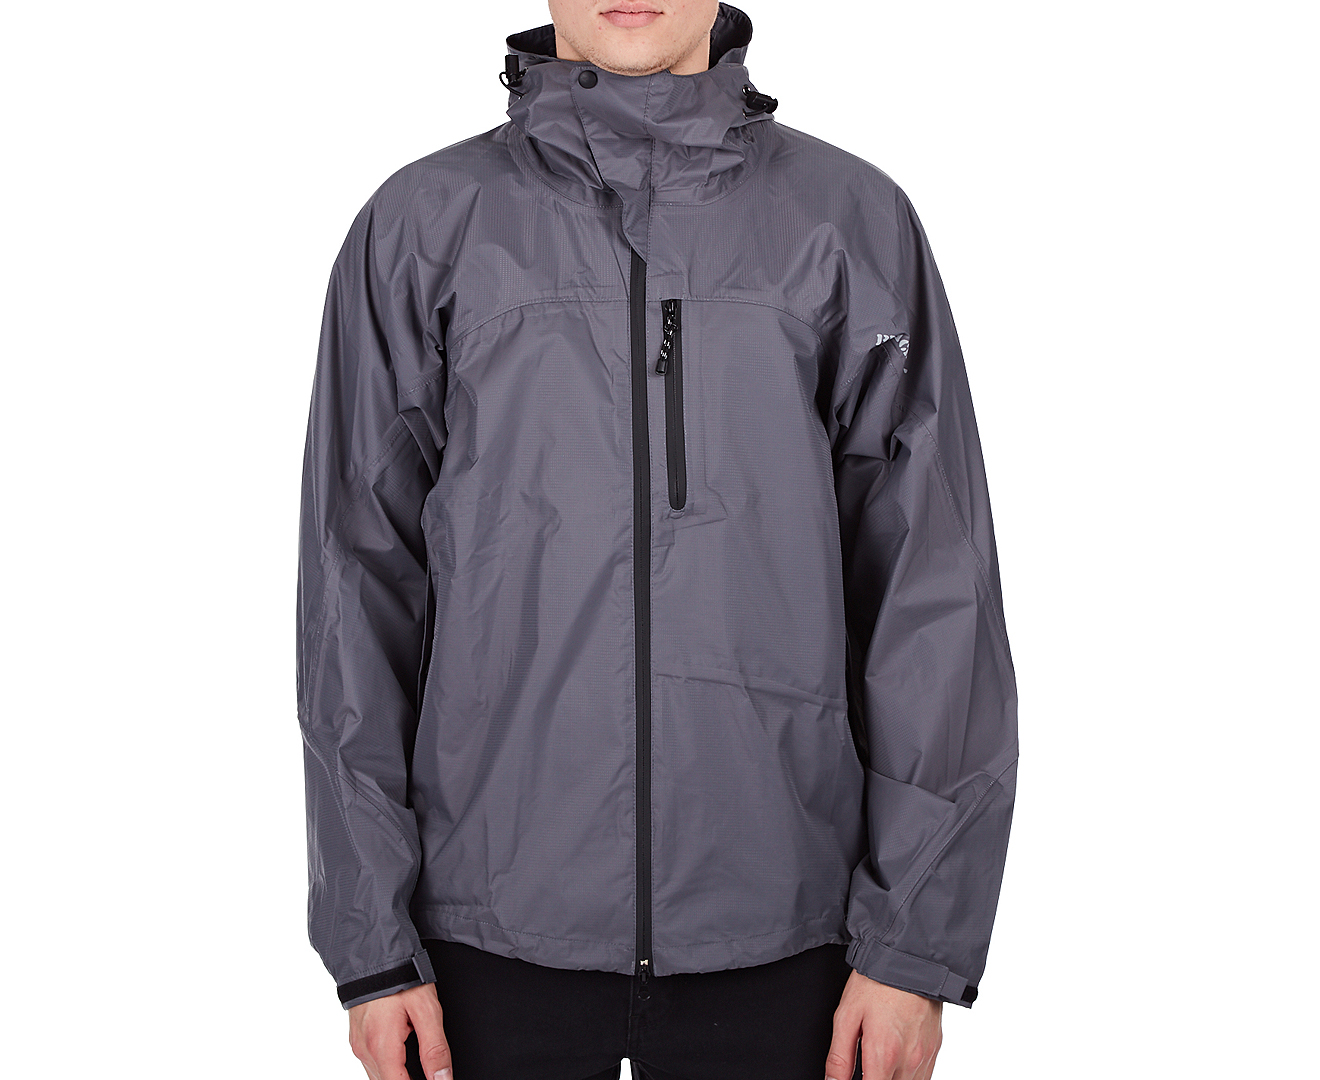 Lightweight Jackets For Travel Australia